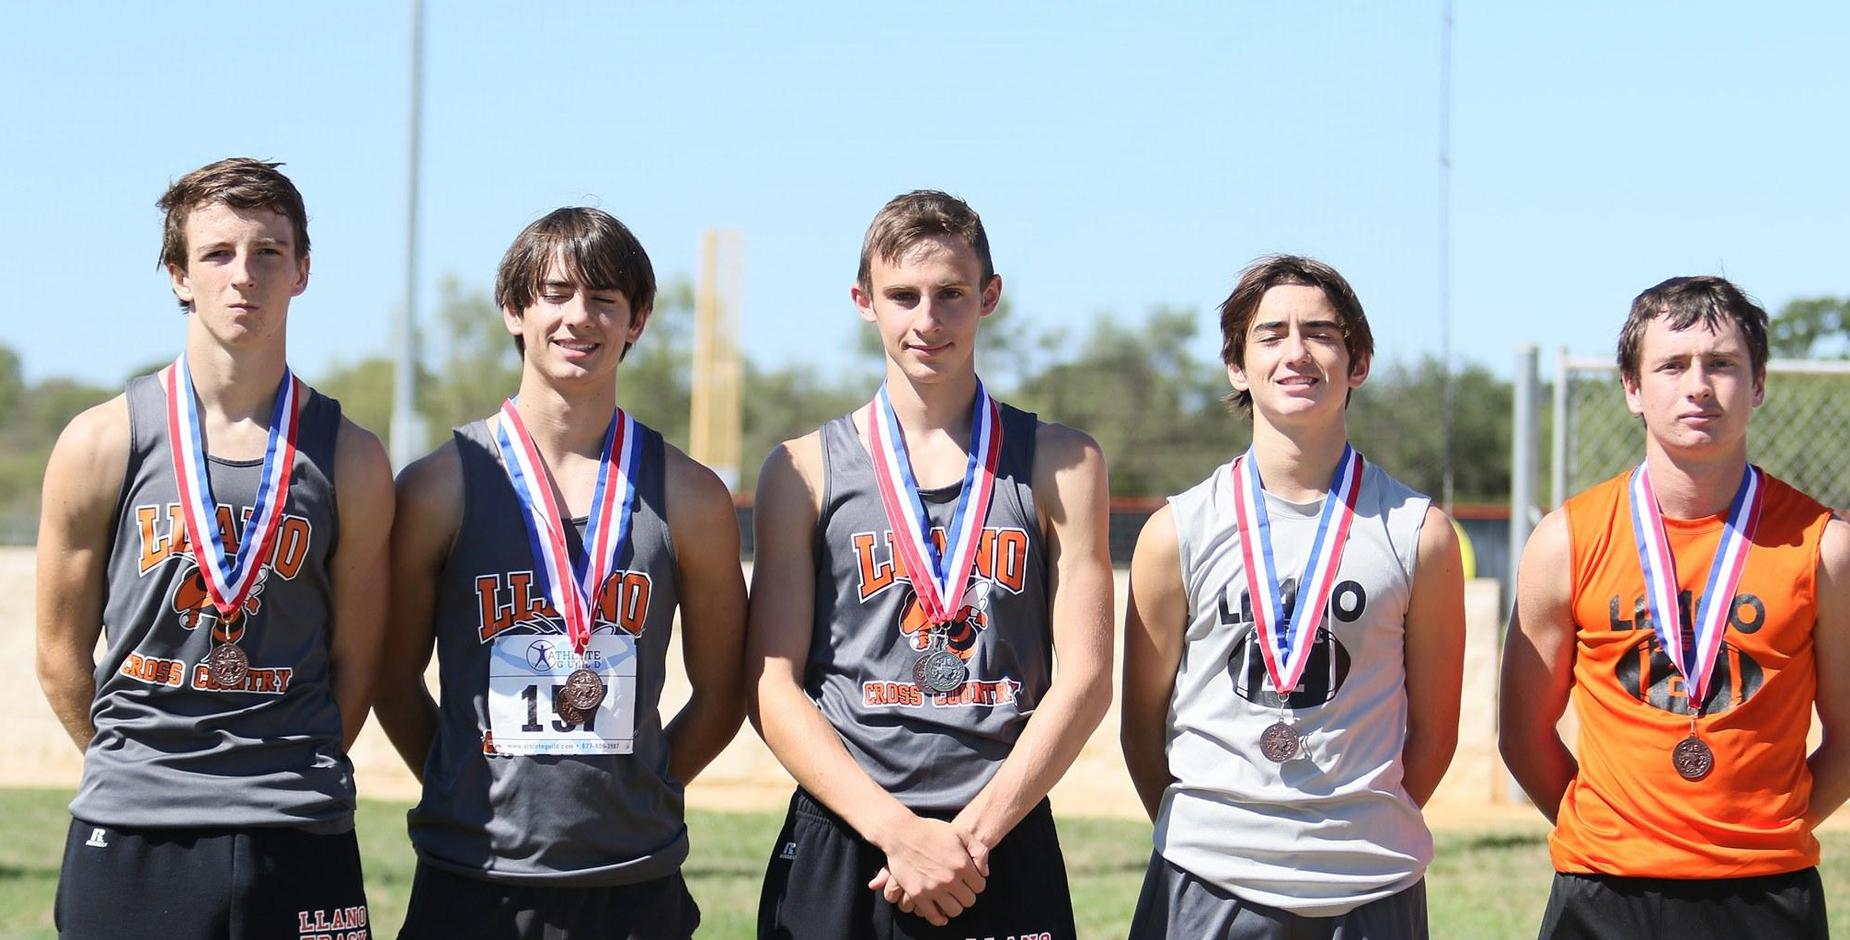 3rd Place in District